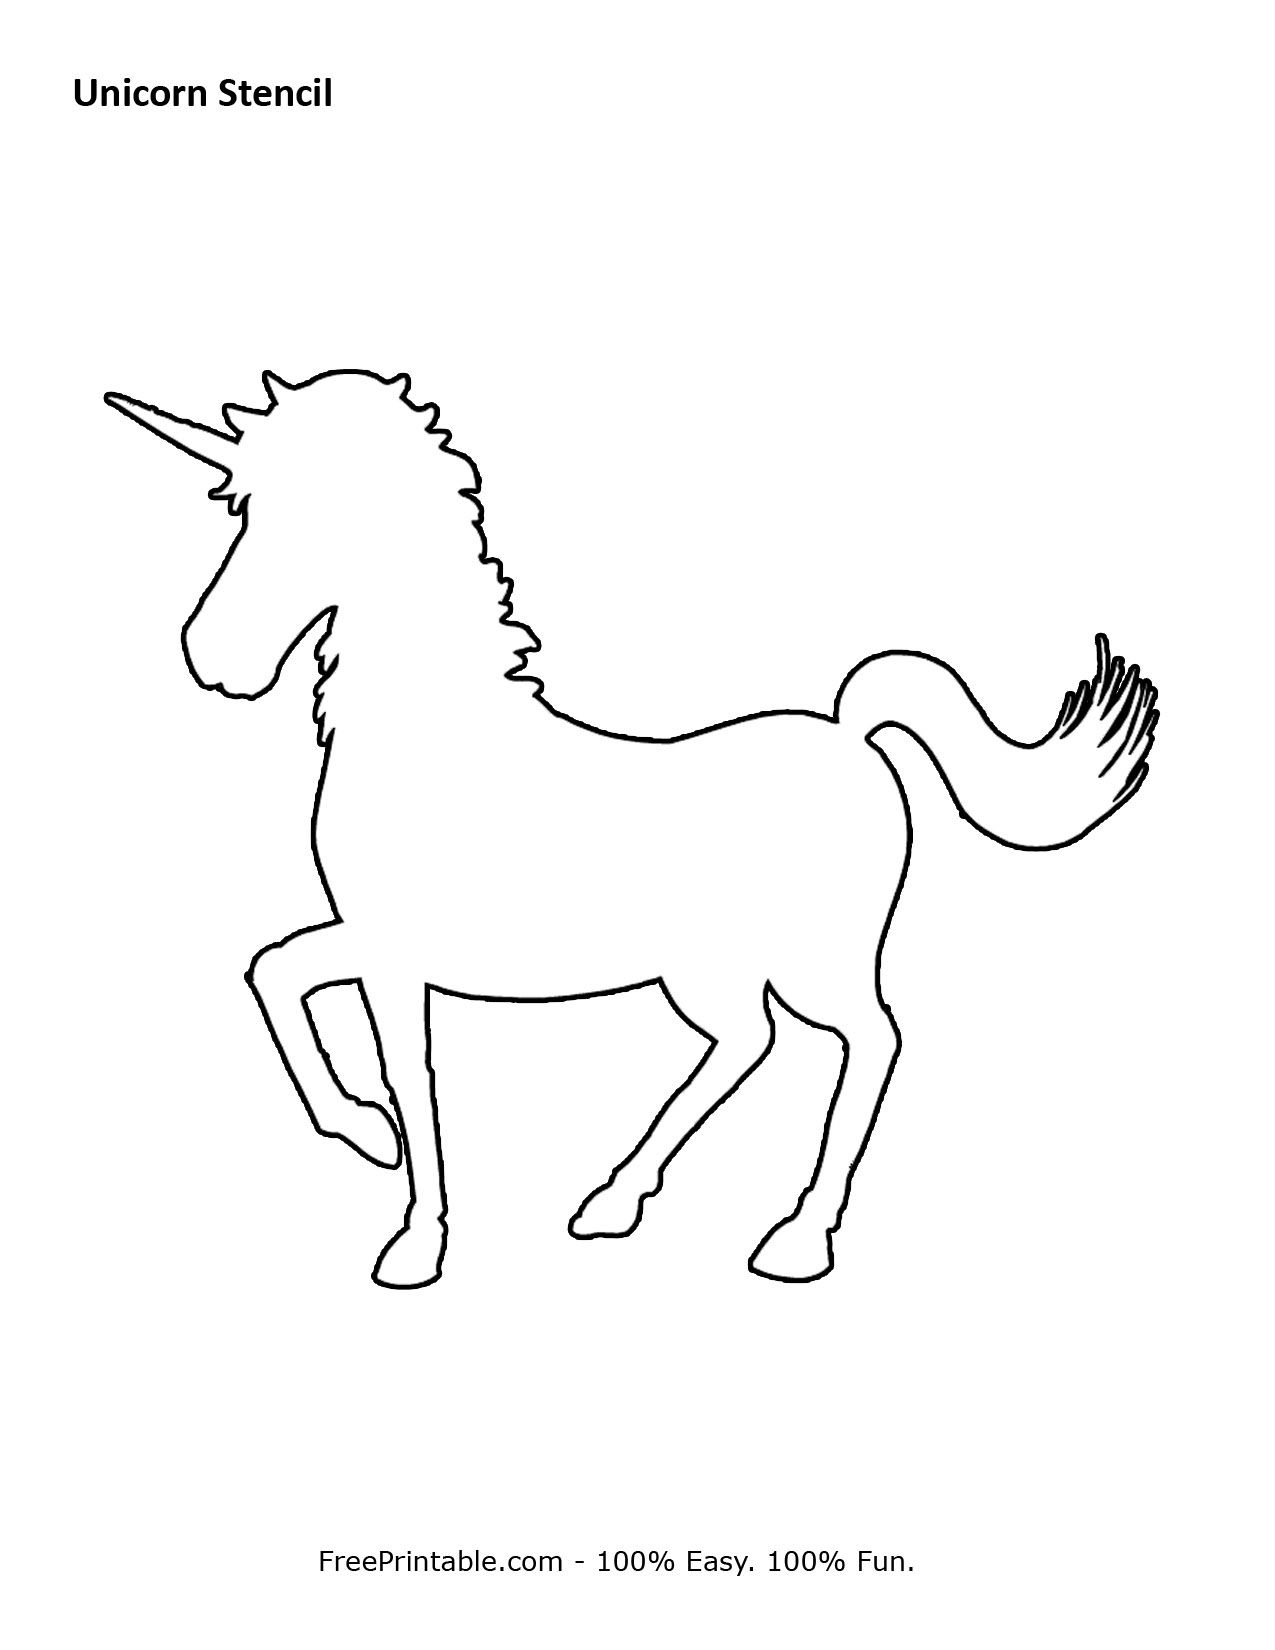 Free Printable Unicorn Stencils | Crafts & Sewing | Pinterest - Free Printable Poodle Template